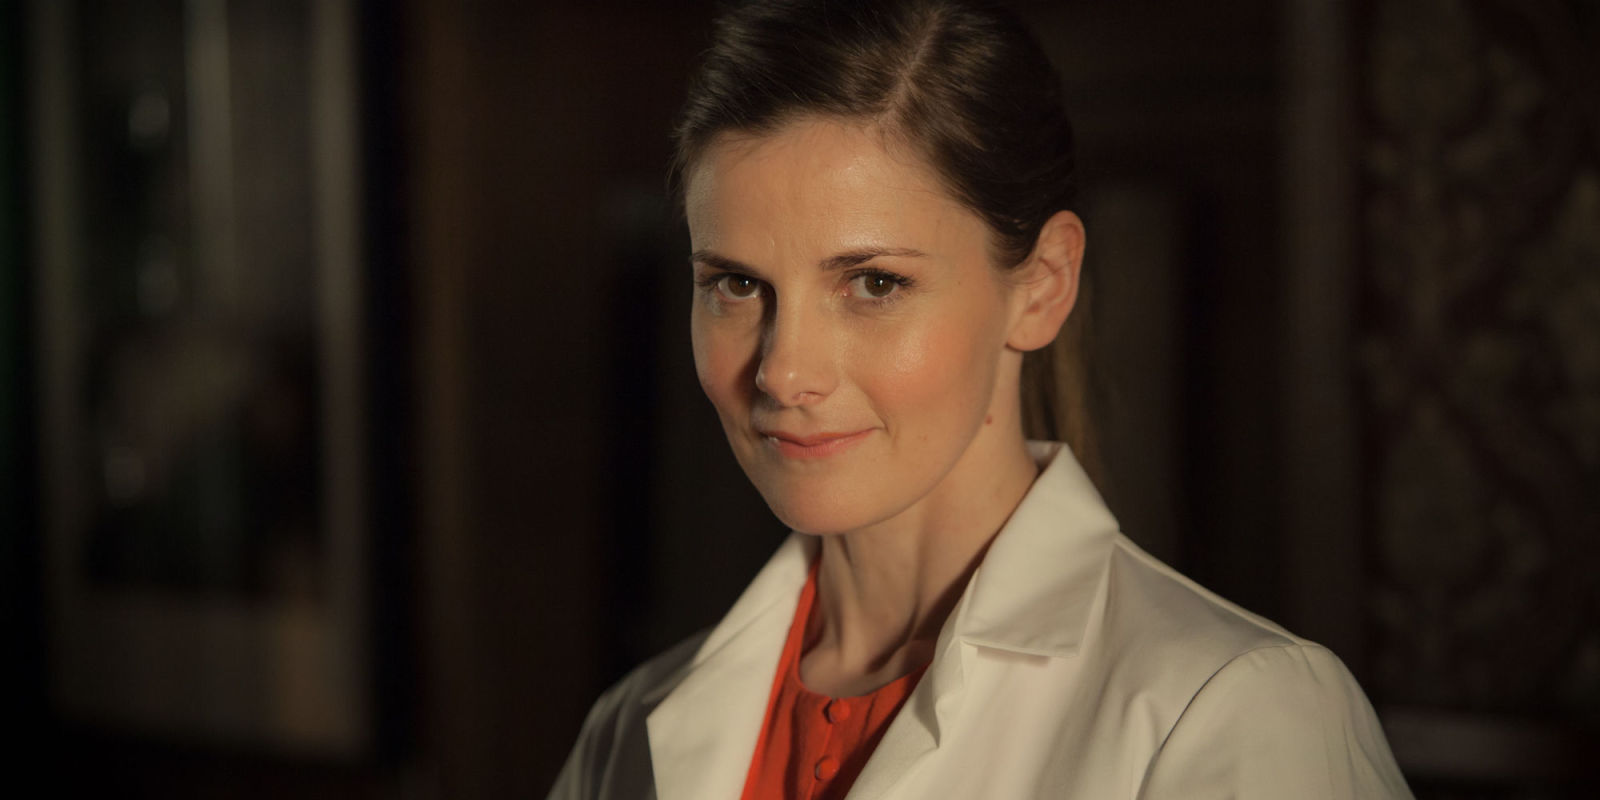 Louise Brealey nudes (66 foto and video), Pussy, Cleavage, Feet, legs 2018